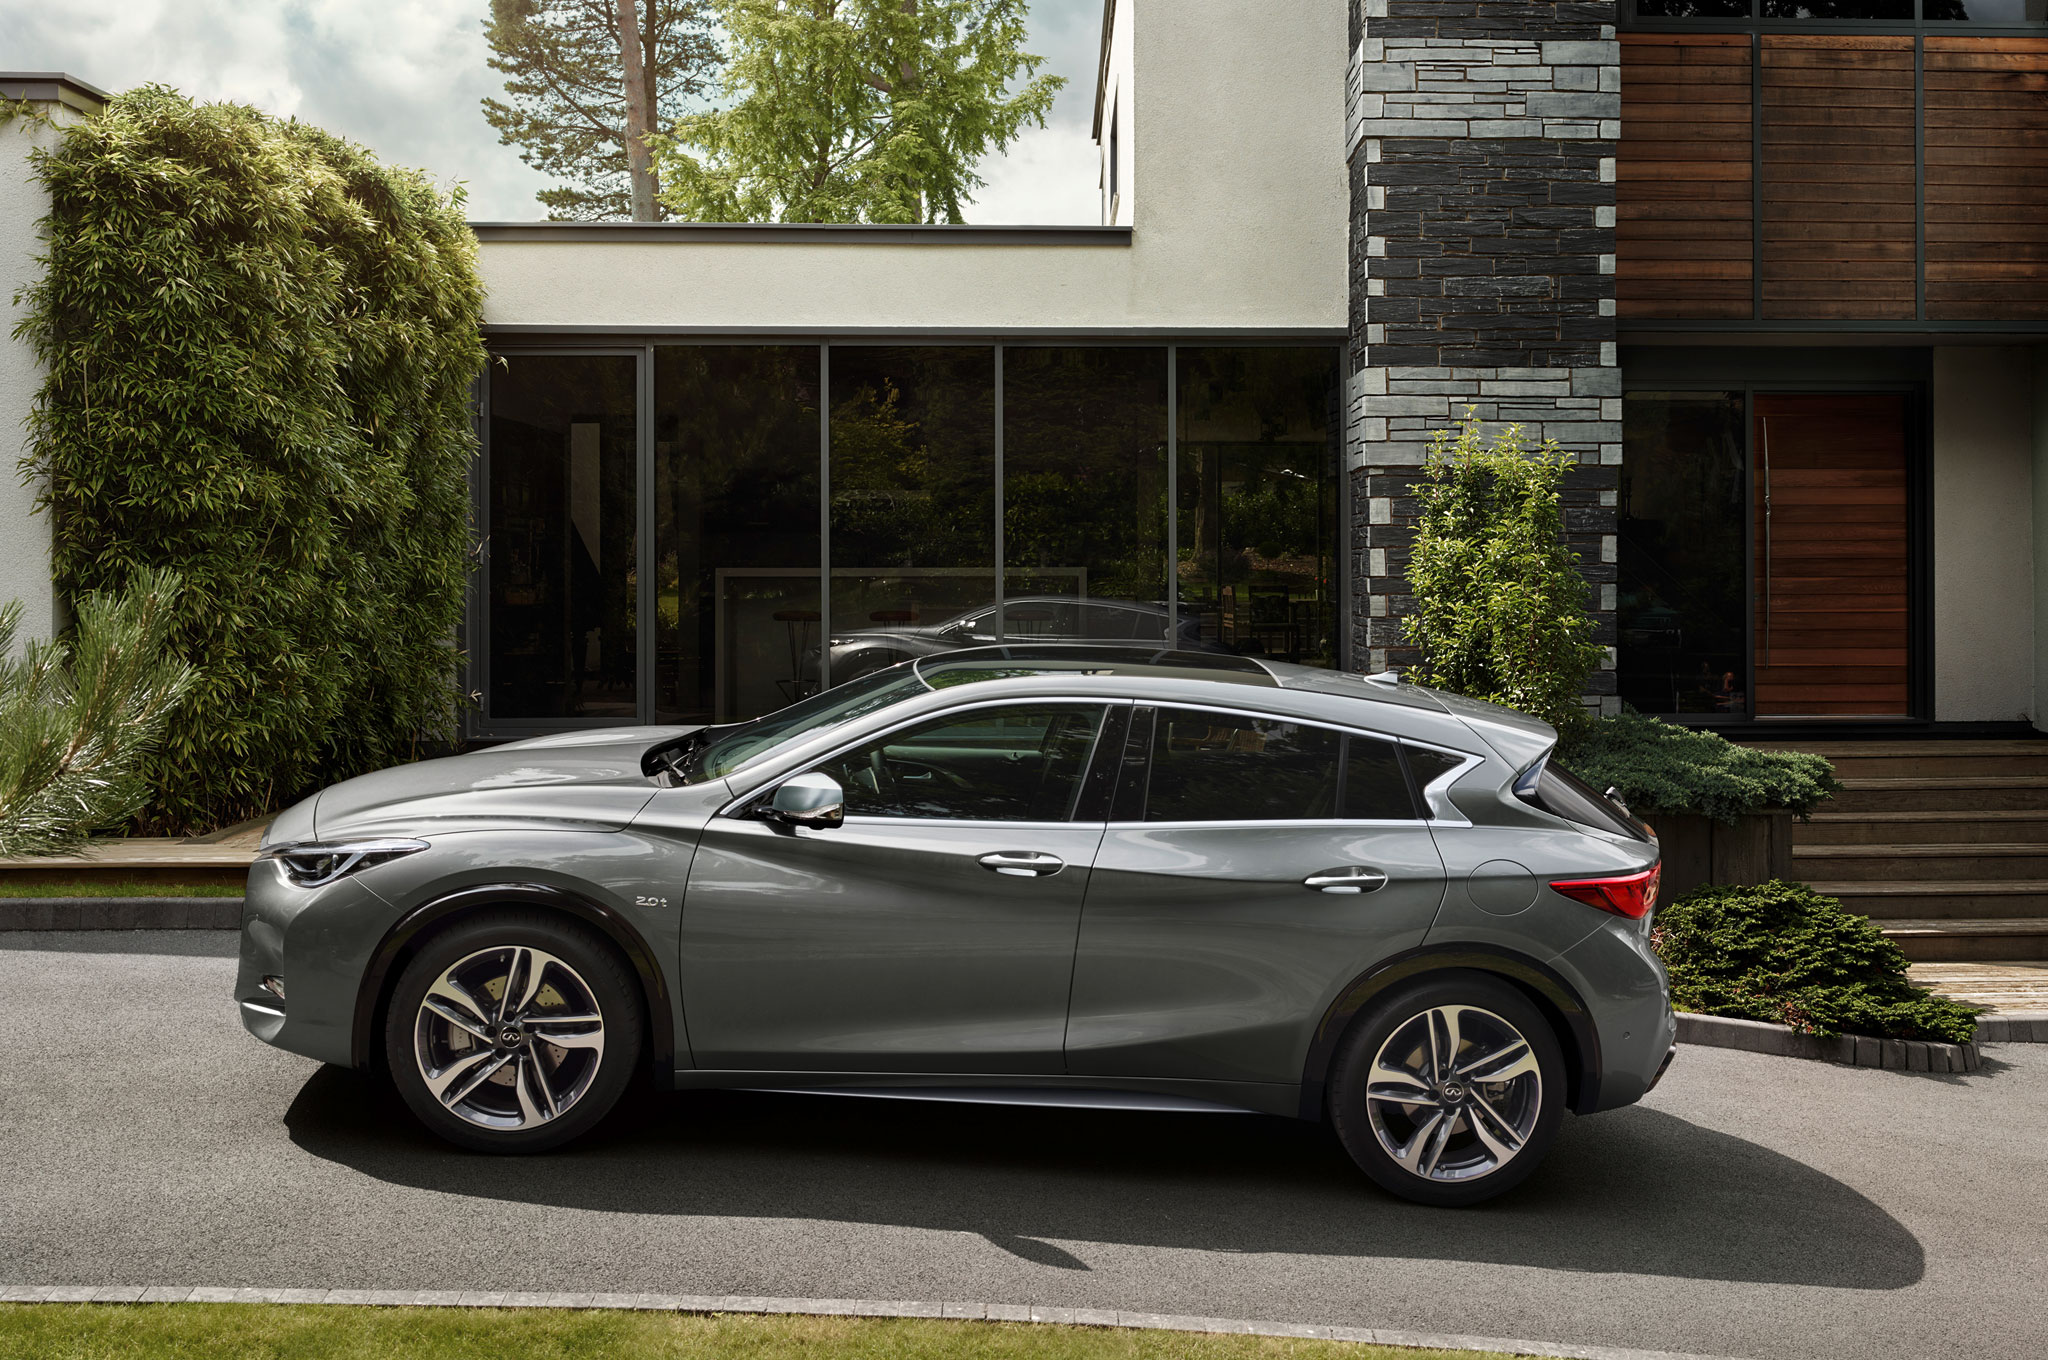 2017 Infiniti Q30 Is The Luxury Brand S First Compact Hatchback